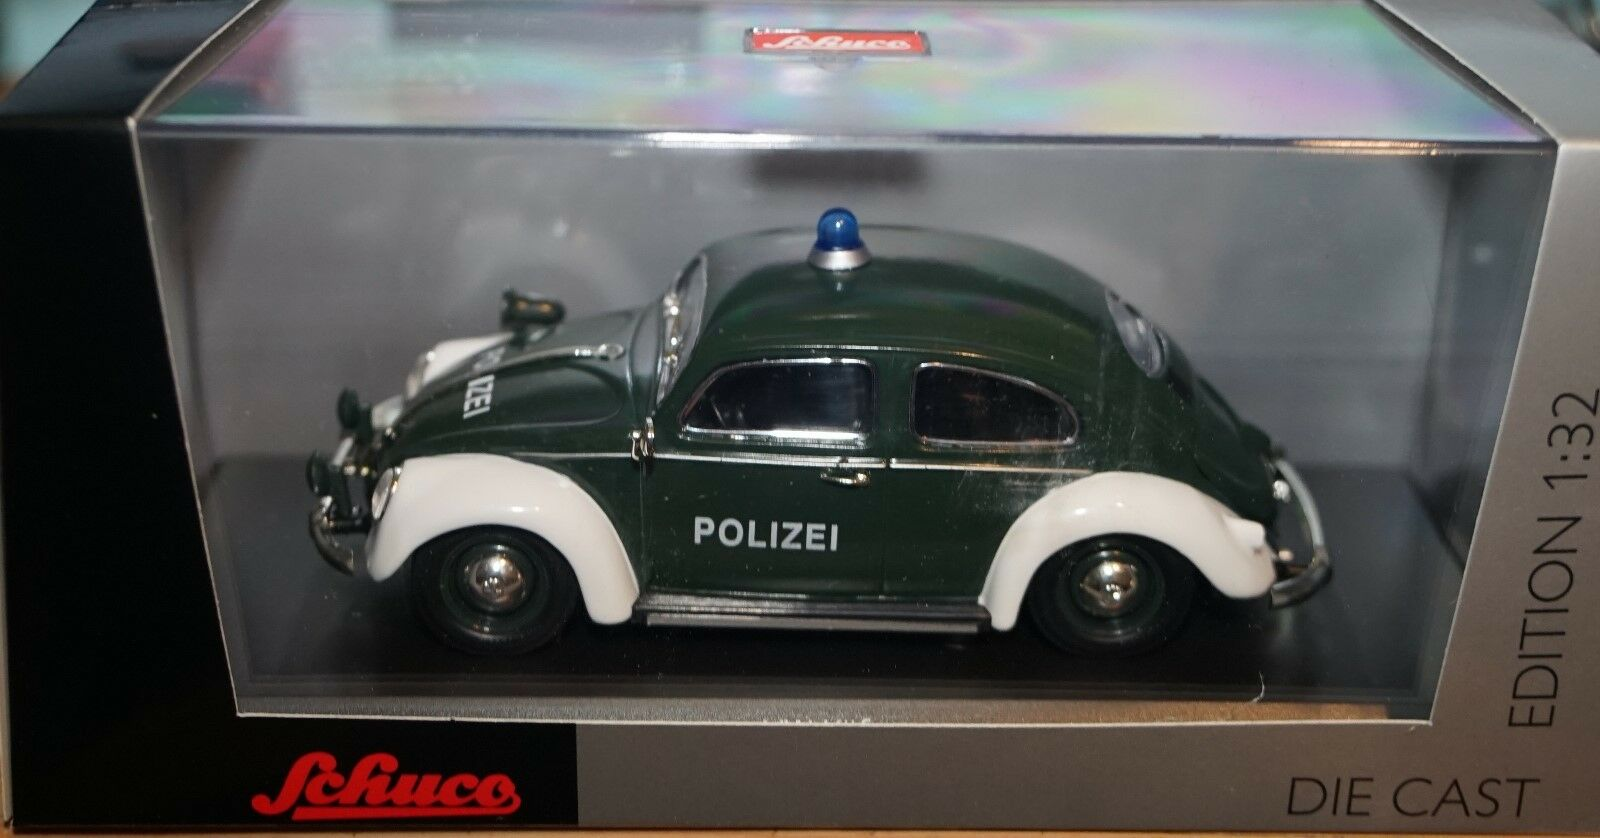 SCHUCO 077373 VOLKSWAGEN KAFER   BEETLE POLIZEI 1 32 scale model